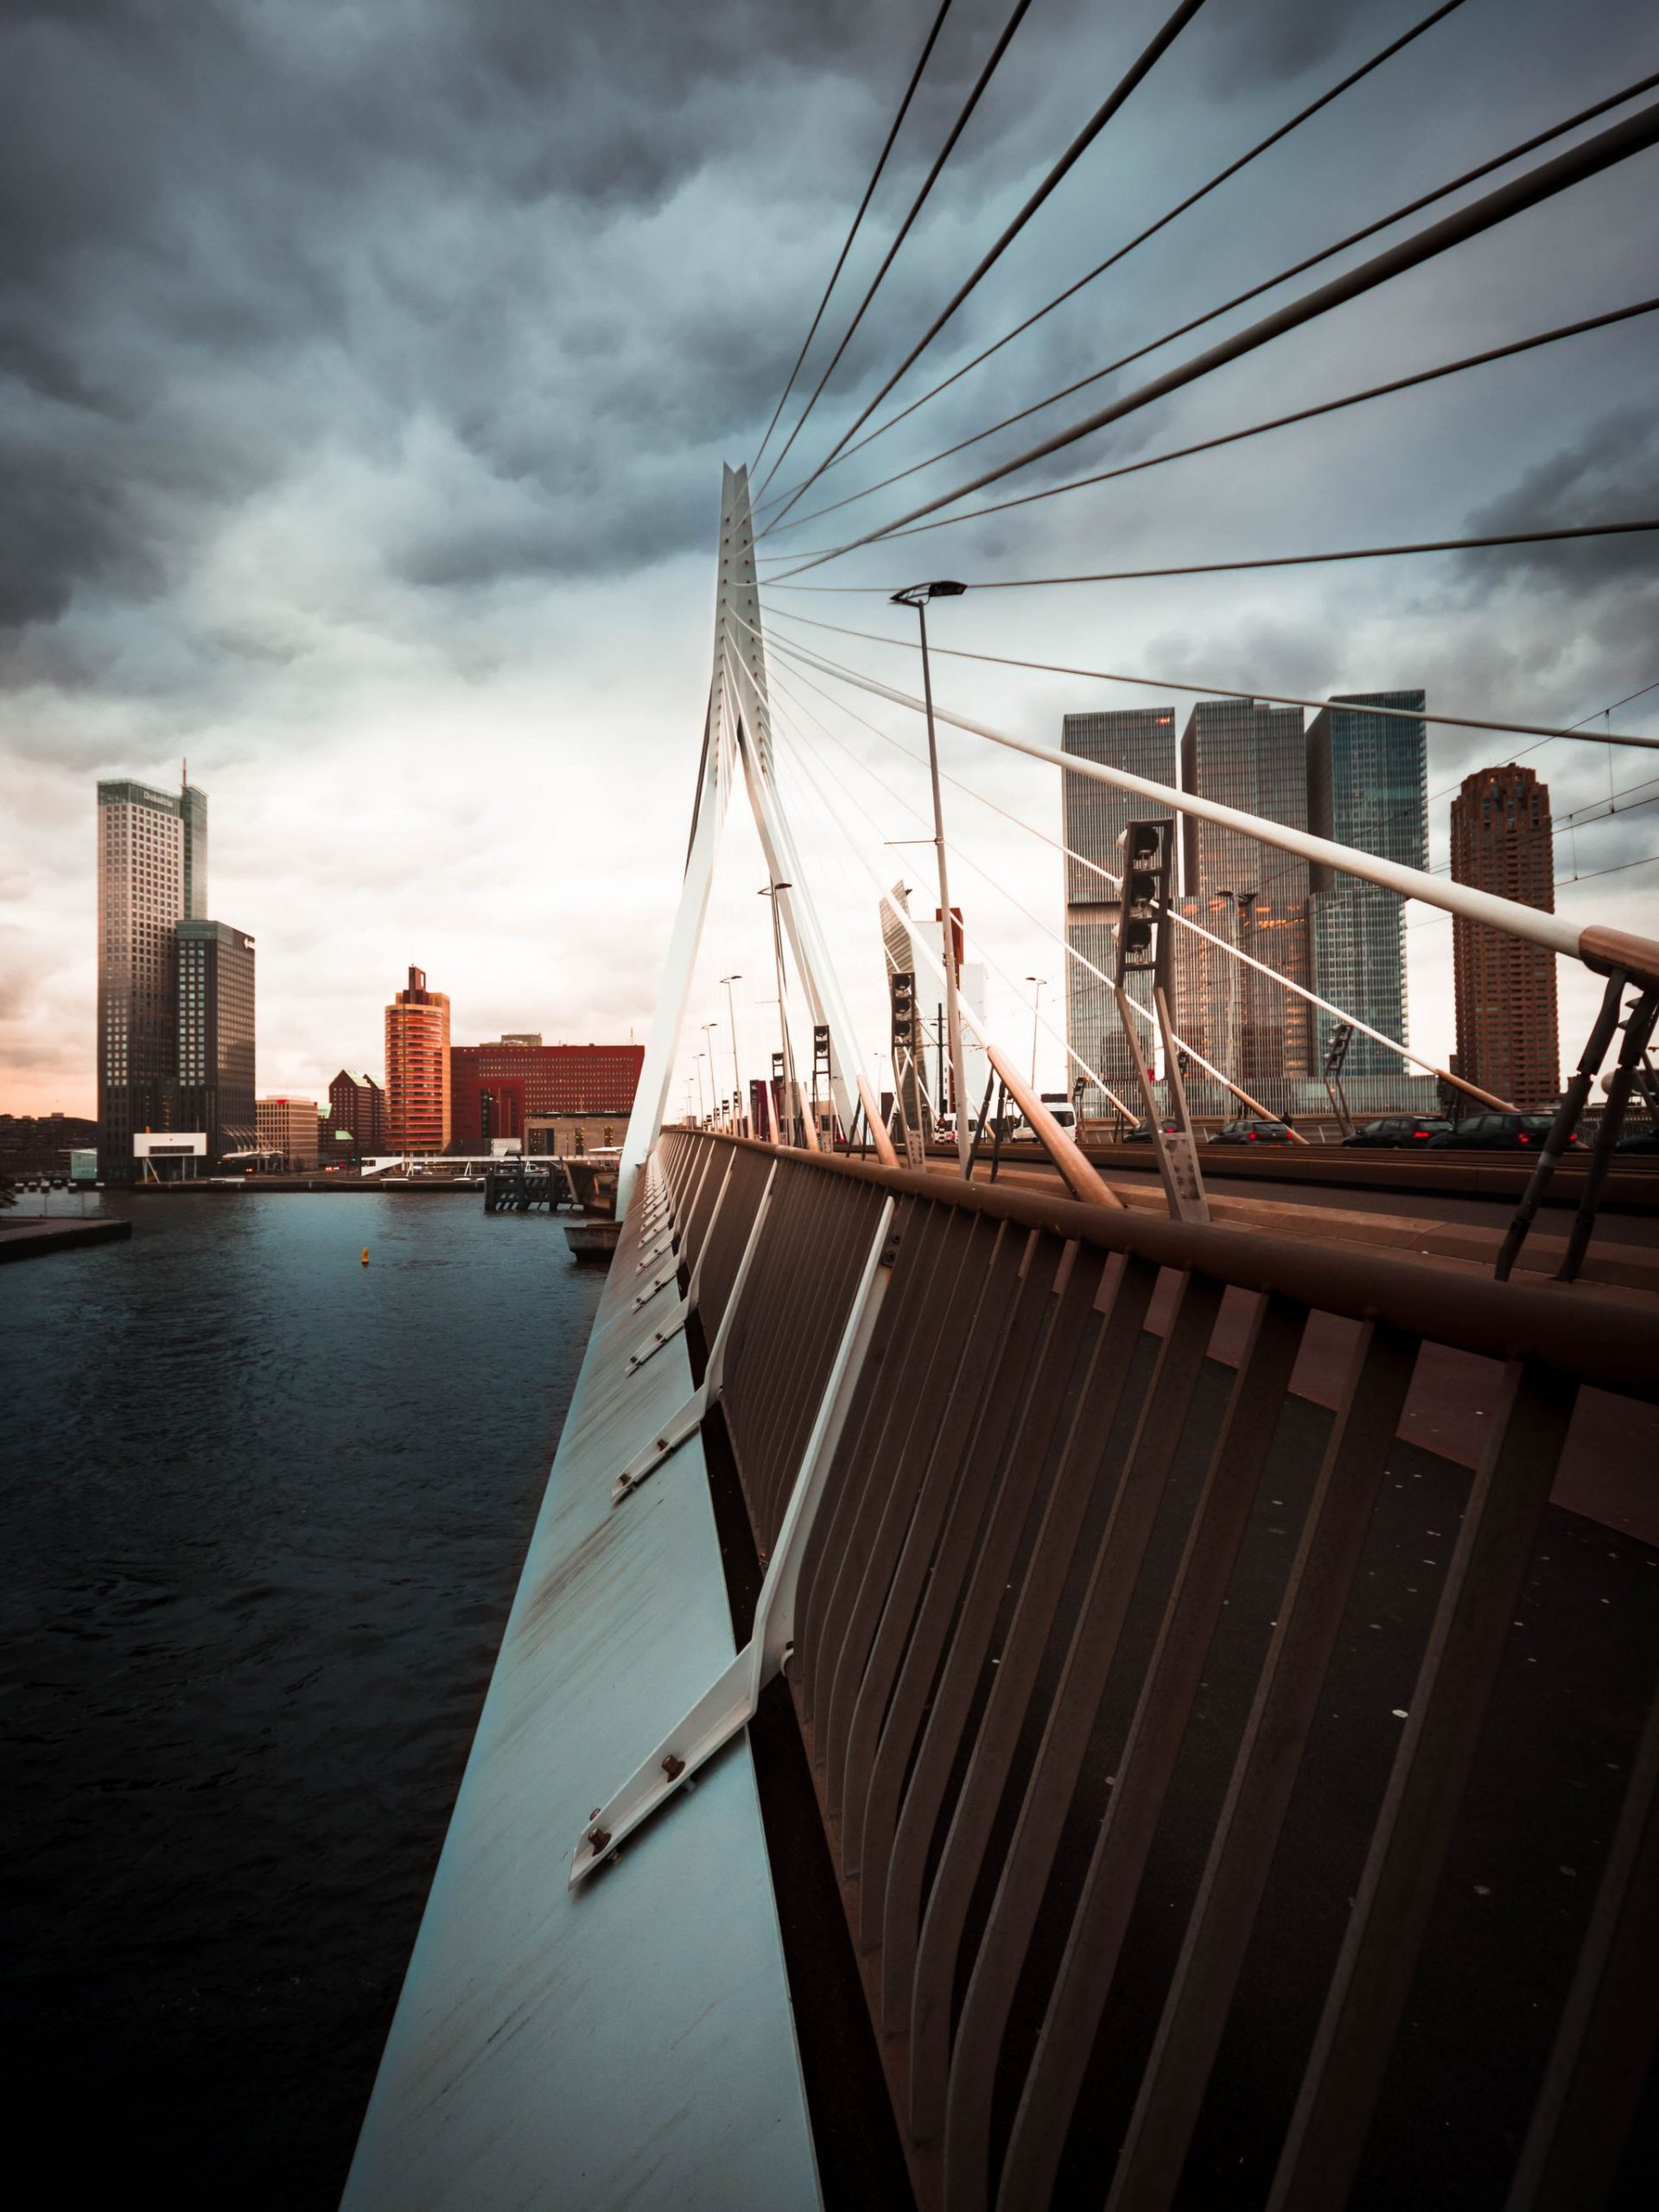 insiders guide, city guide, rotterdam, the netherlands, tips, travel, insiders tips